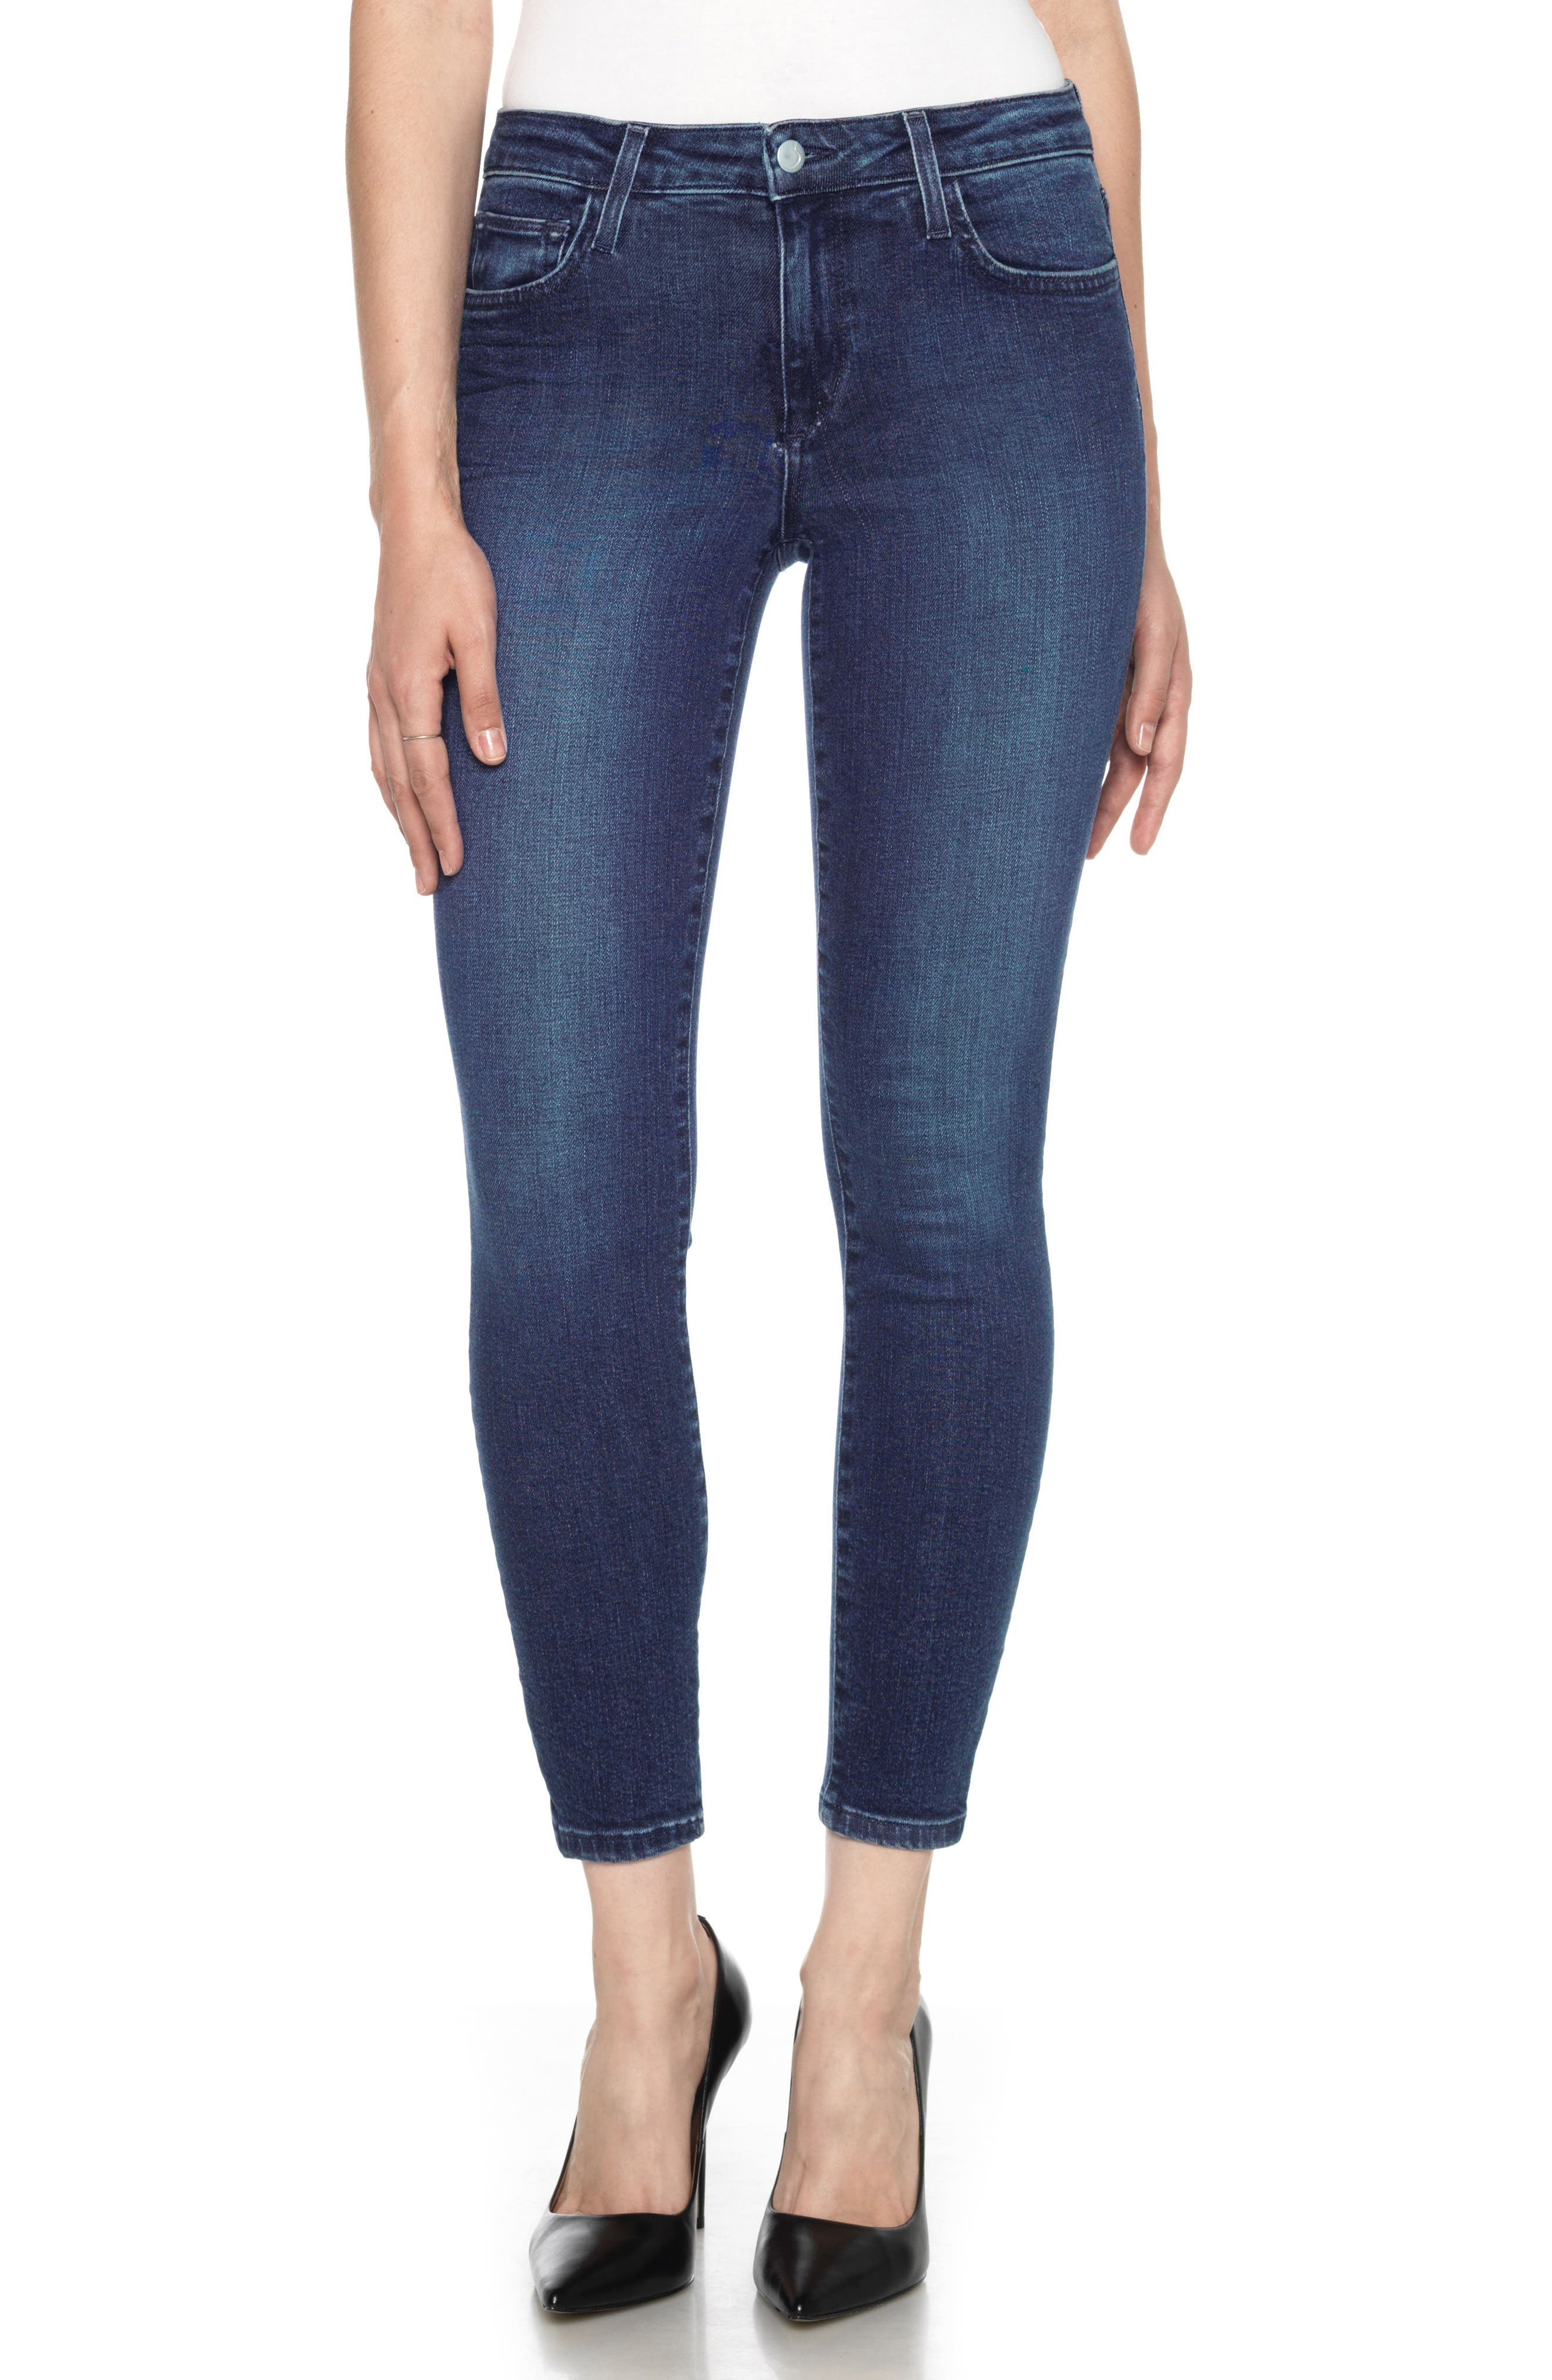 Icon High Waist Crop Skinny Jeans,                         Main,                         color, Everly